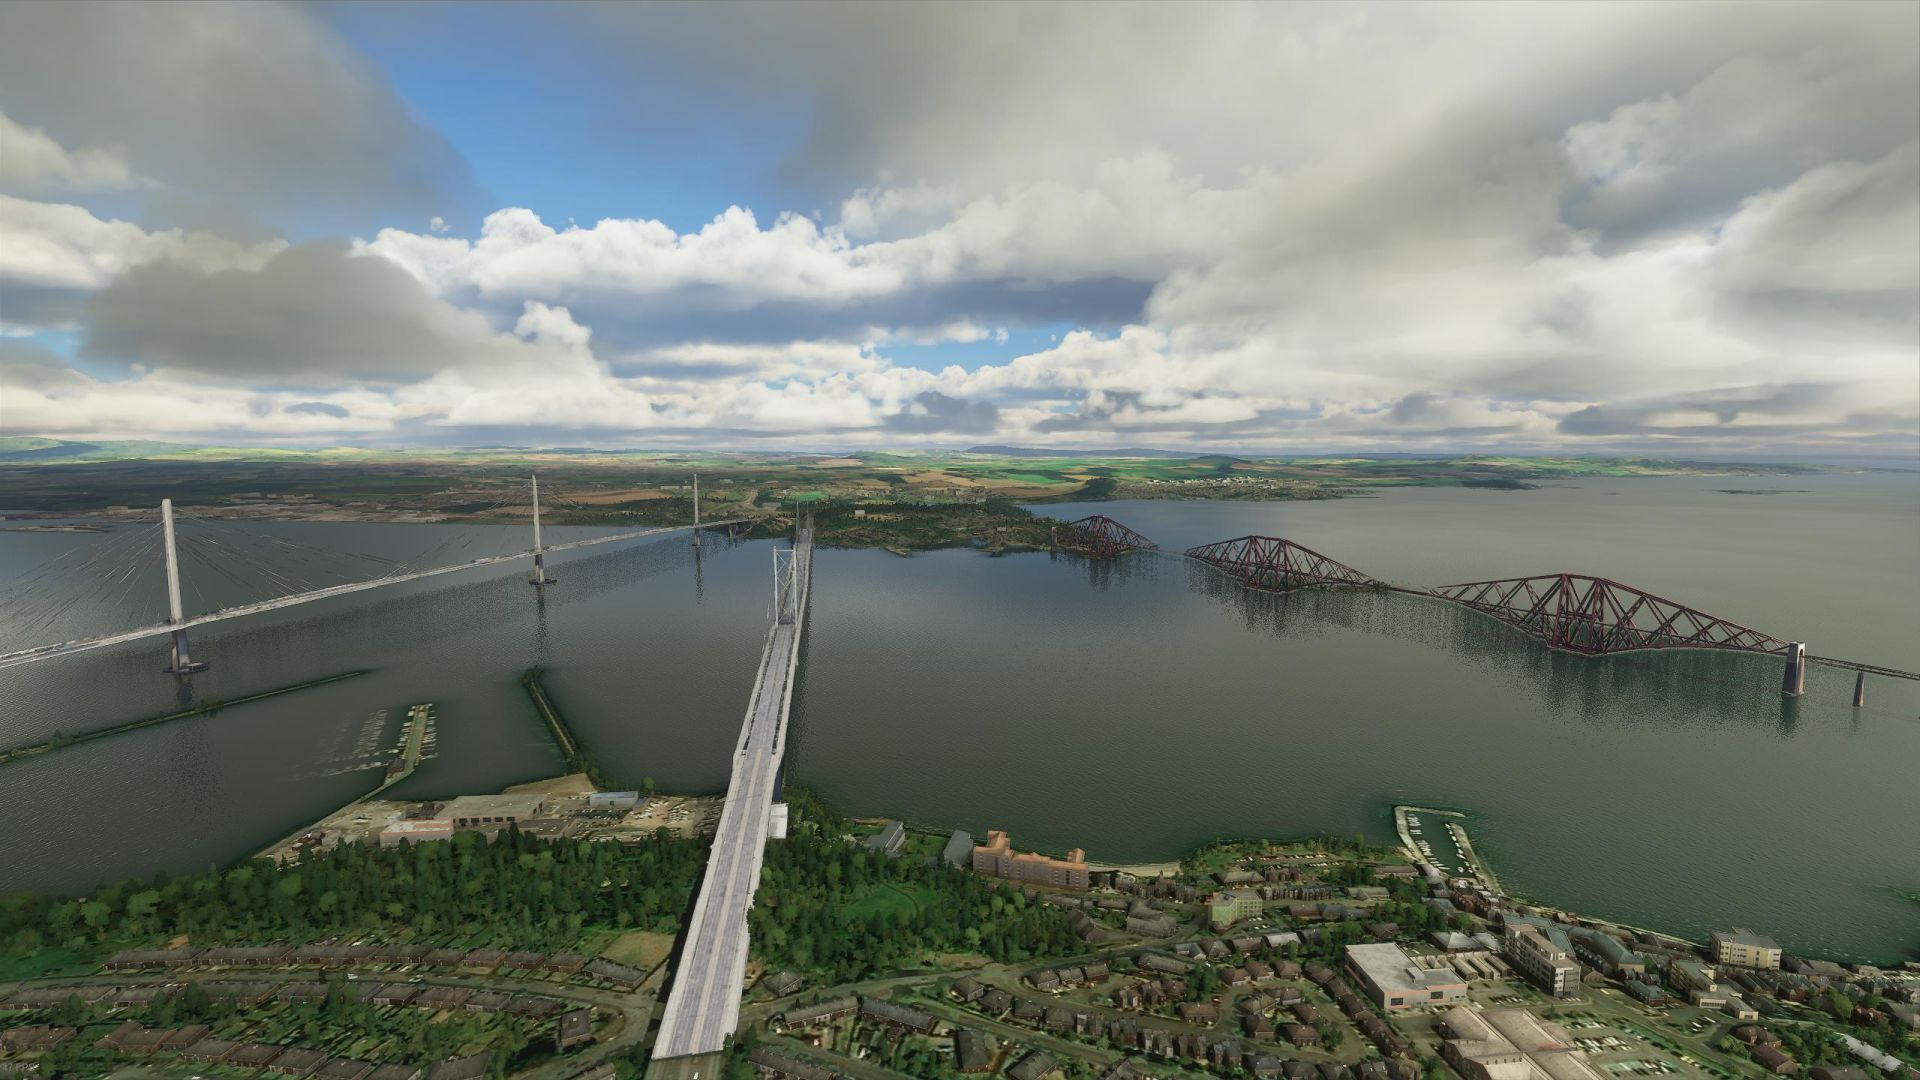 A Microsoft Flight Simulator showing the three bridges across Scotland's River Forth